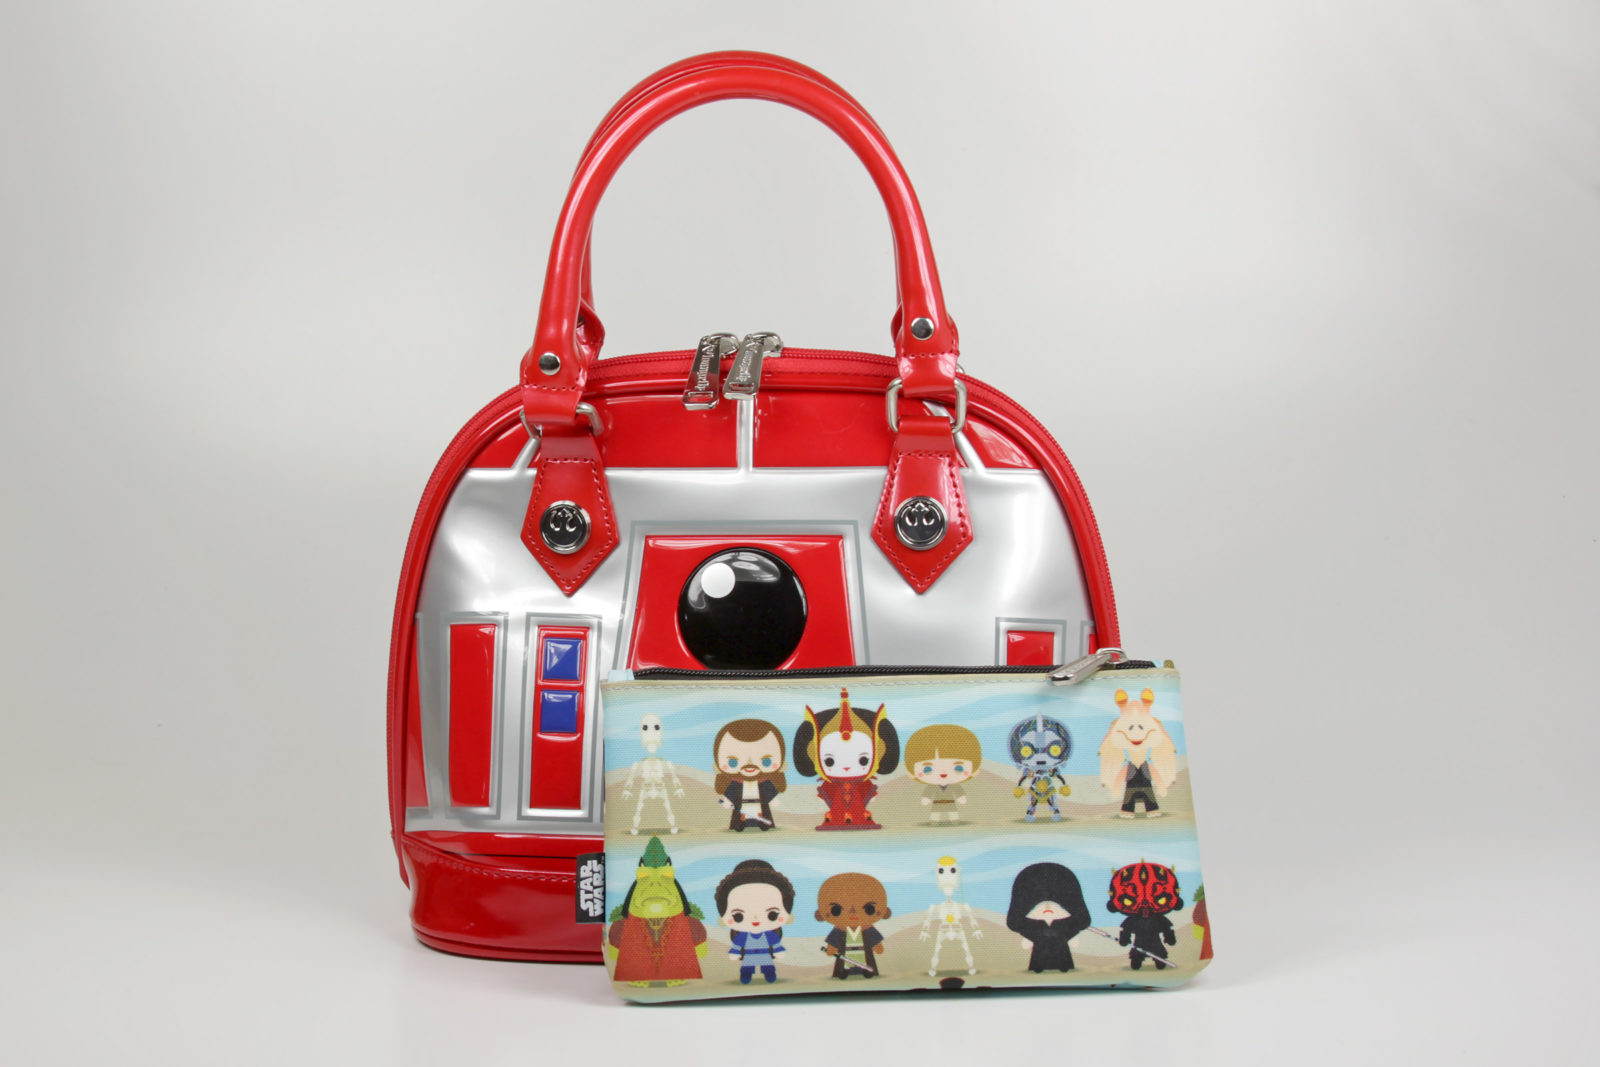 Star Wars The Phantom Menace bags by Loungefly